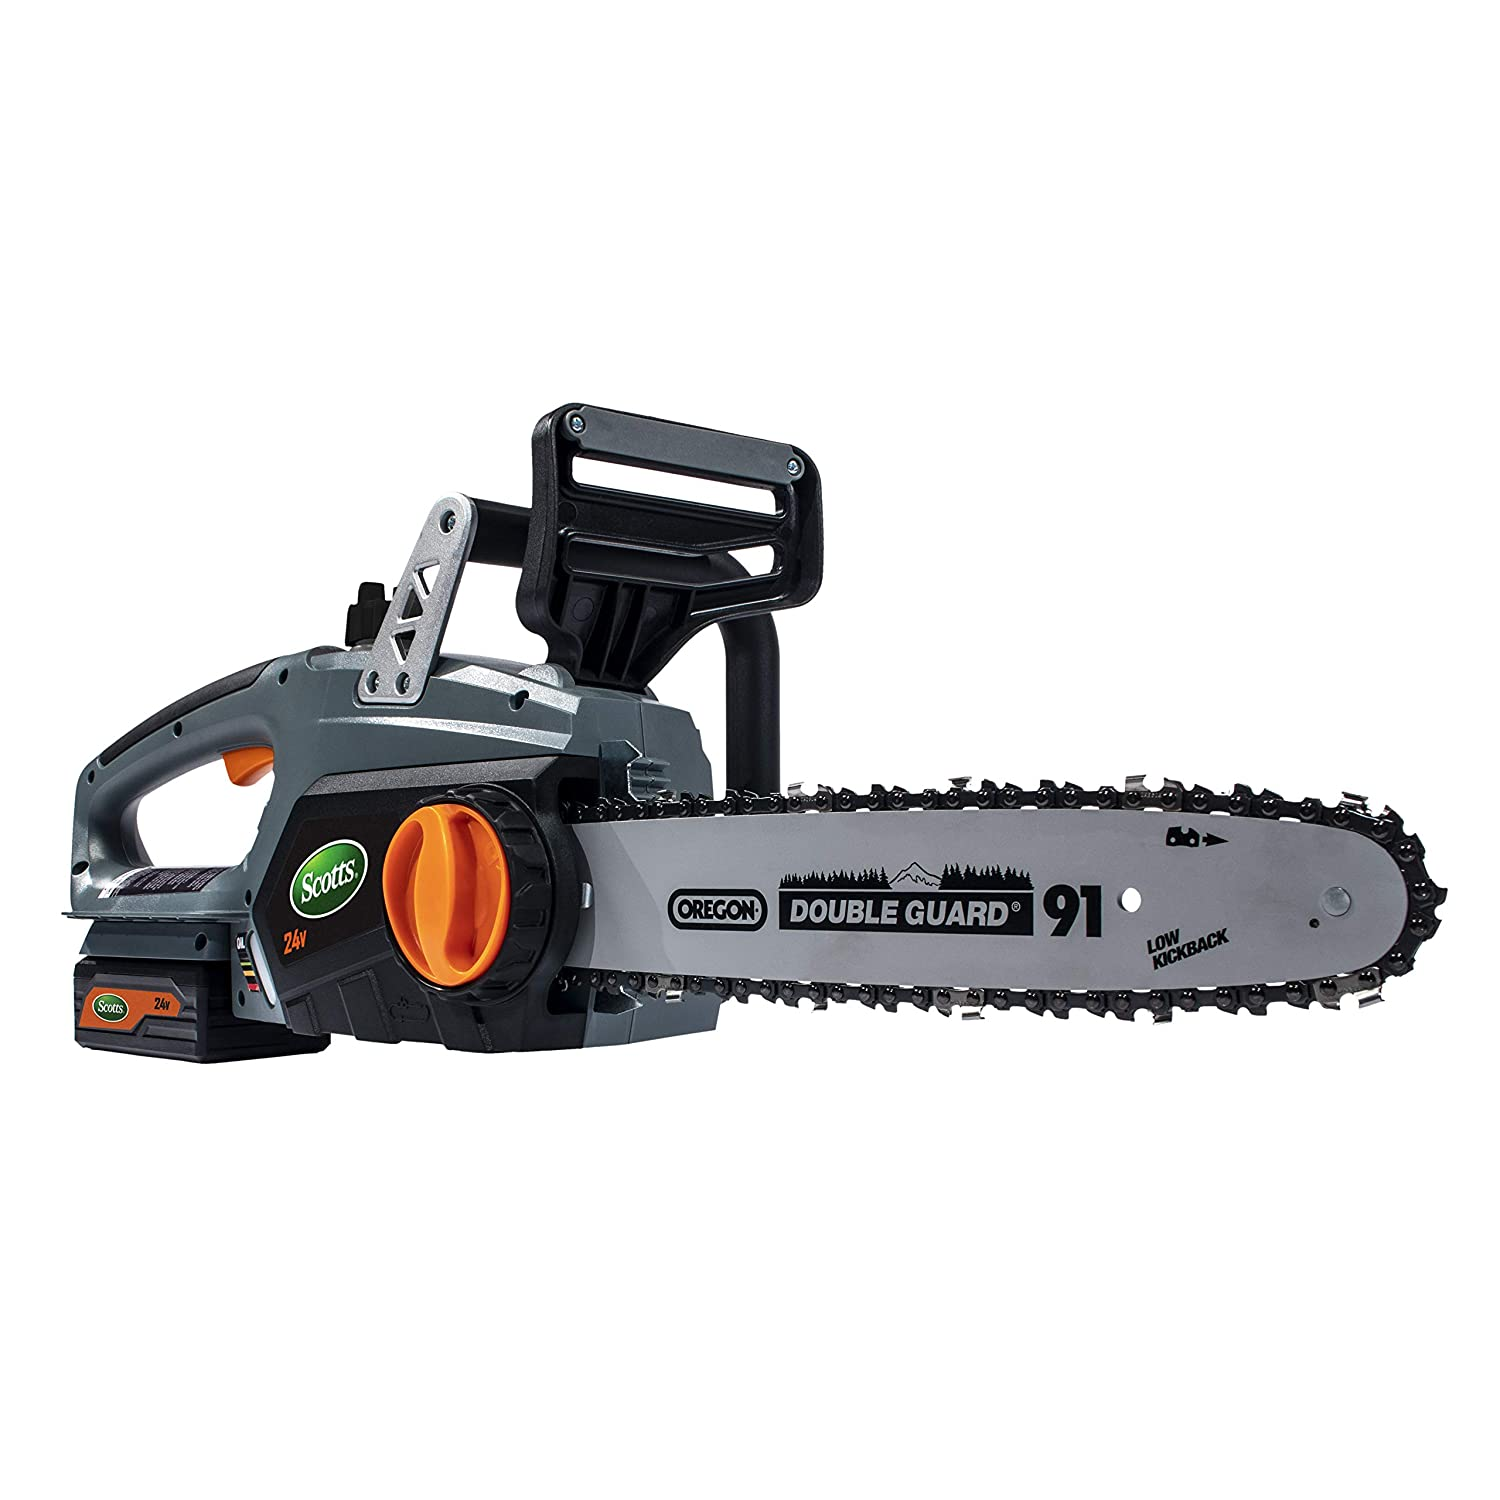 Scotts Outdoor Power Tools LCS31224S featured image 1